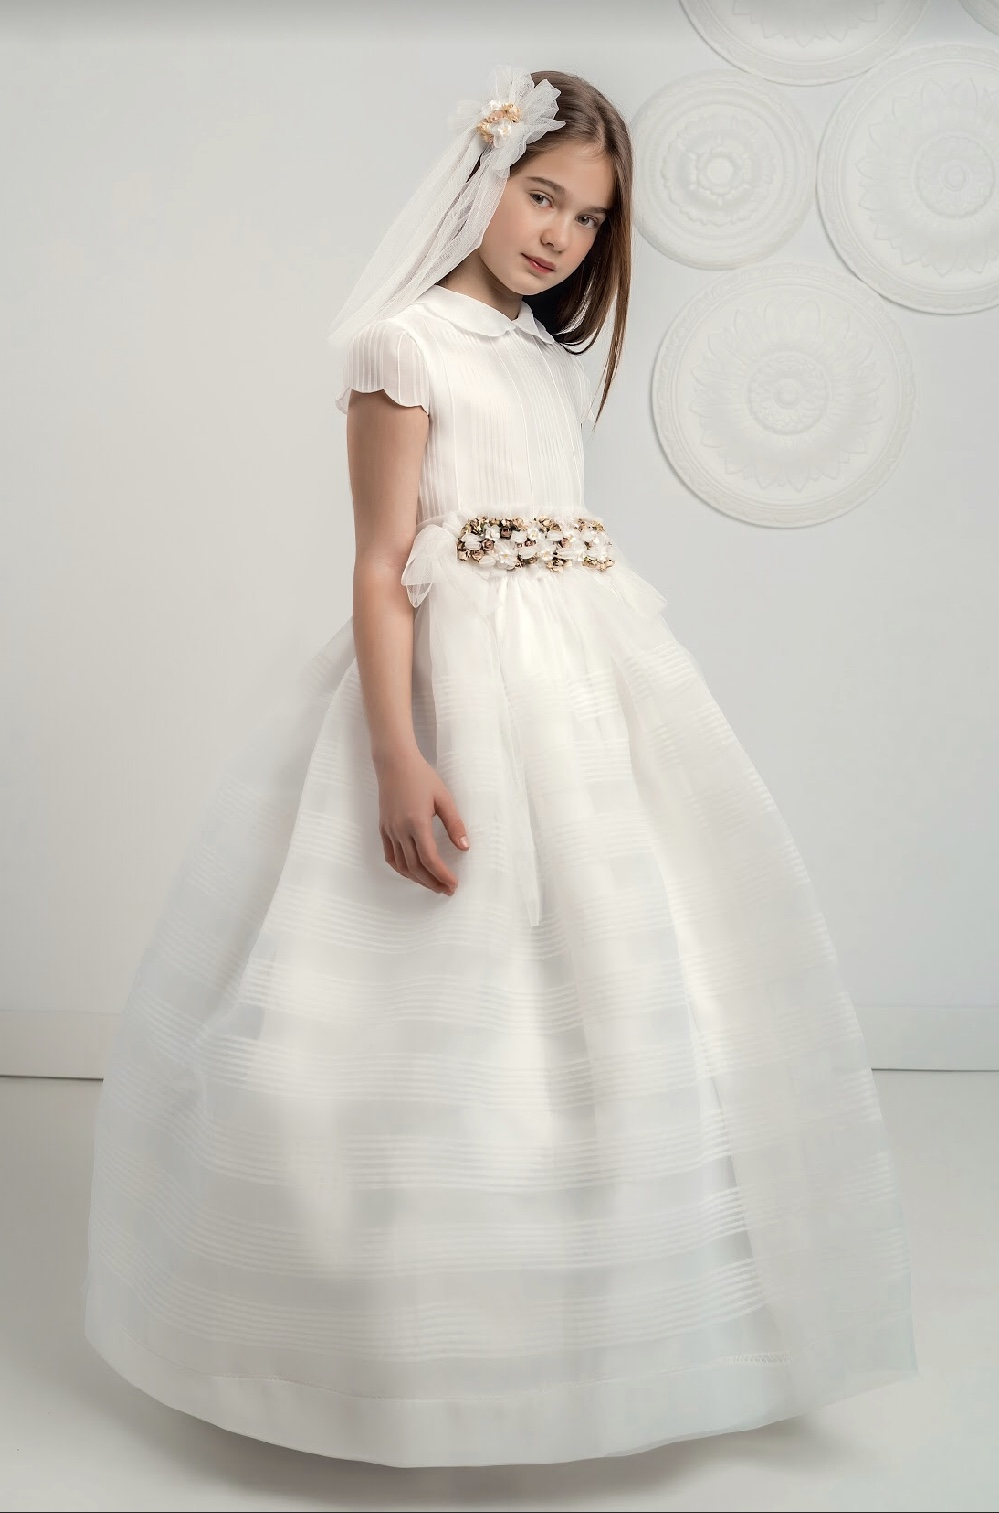 White Organza Communion Dress with delicate tucks and short sleeves